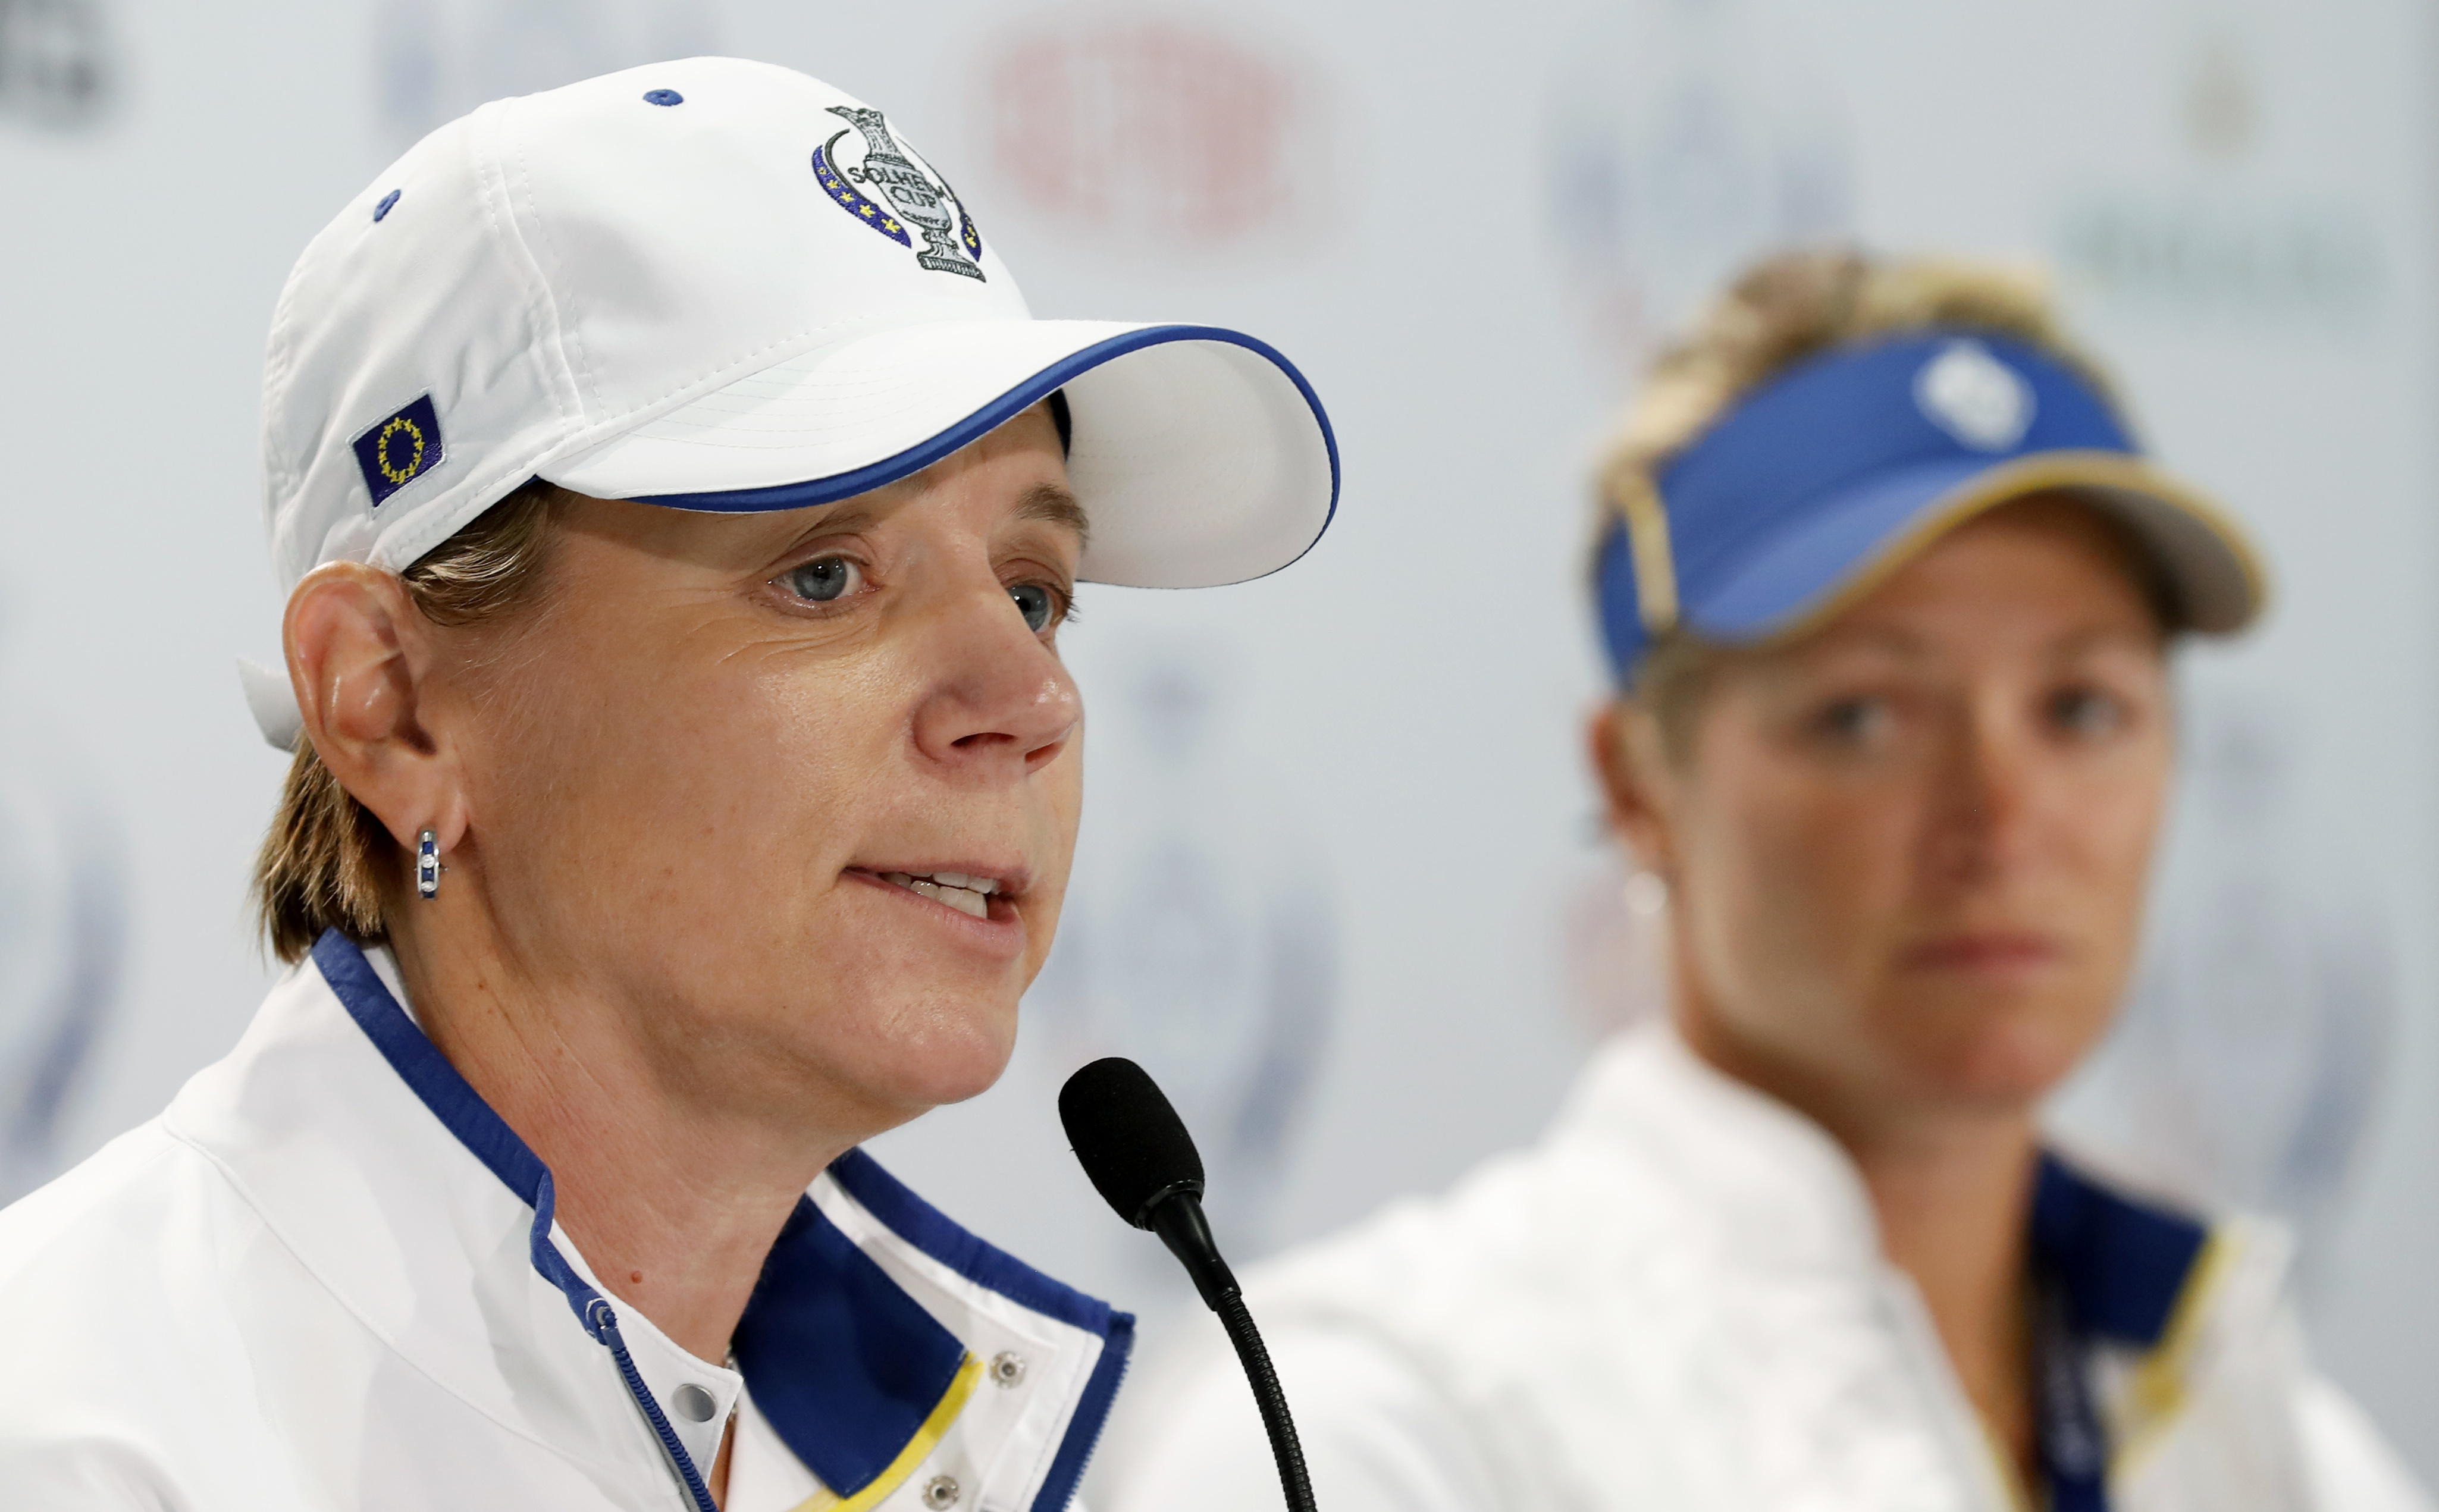 Europe captain Annika Sorenstam, of Sweden, speaks during a news conference for the Solheim Cup golf tournament as Europe's Suzann Pettersen, of Norway, right, looks on, Wednesday, Aug. 16, 2017, in West Des Moines, Iowa. Pettersen has pulled out of this